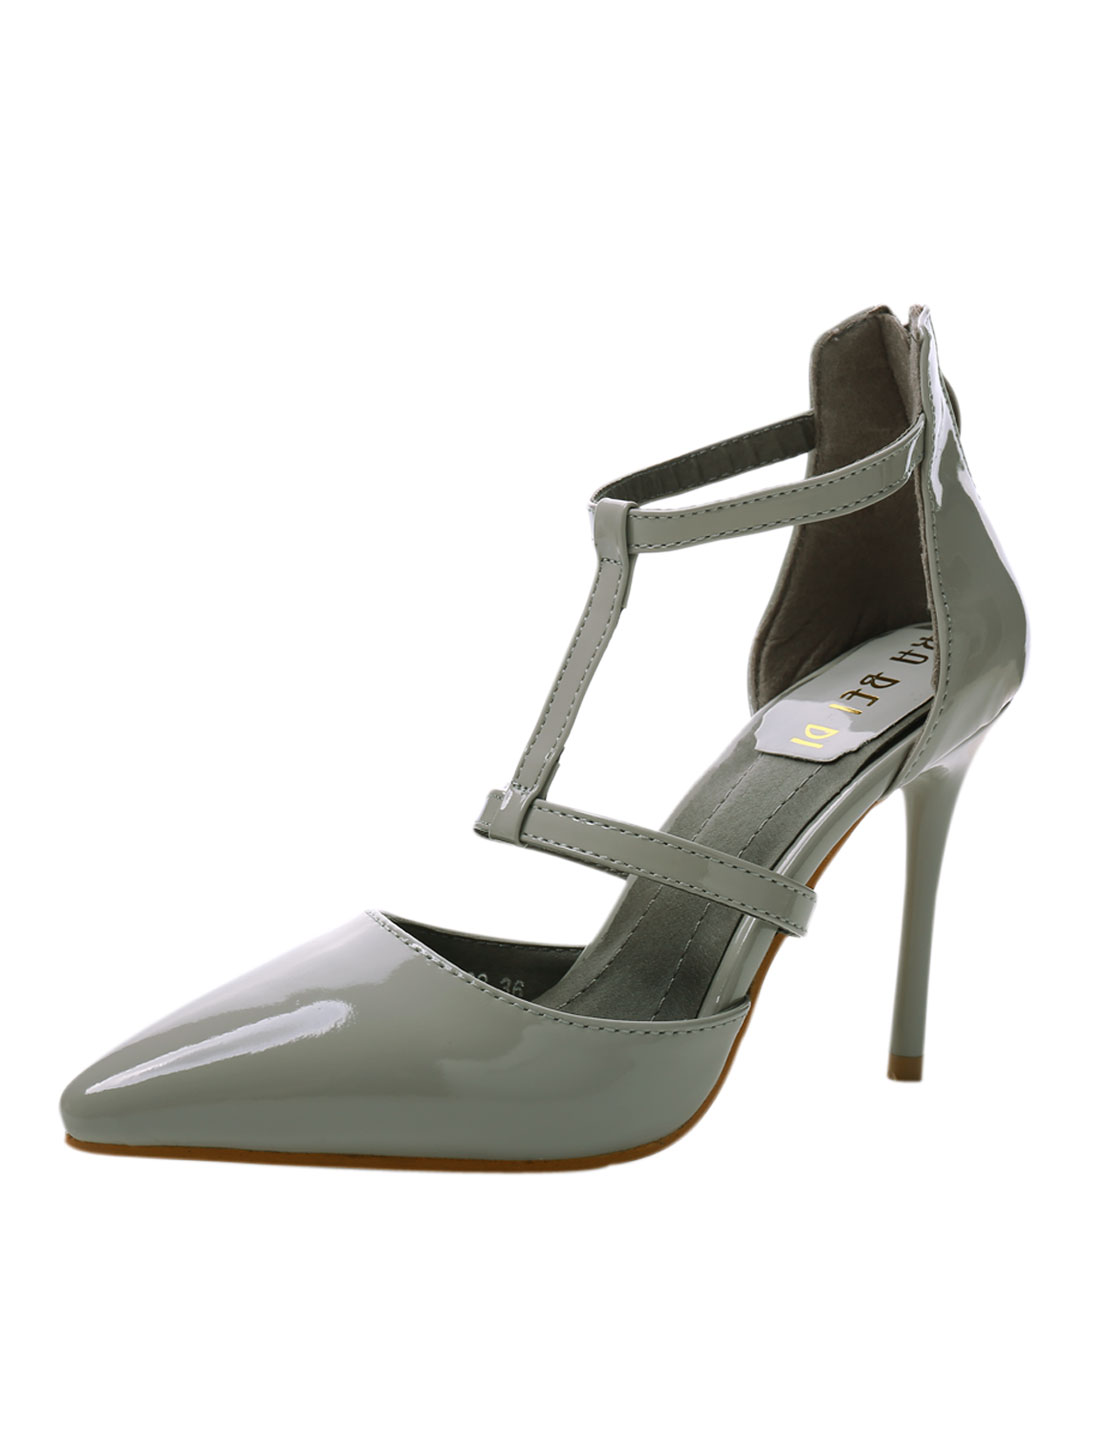 Women Cut Out Strappy Pointed Toe High Heels Pumps Light Gray US 6